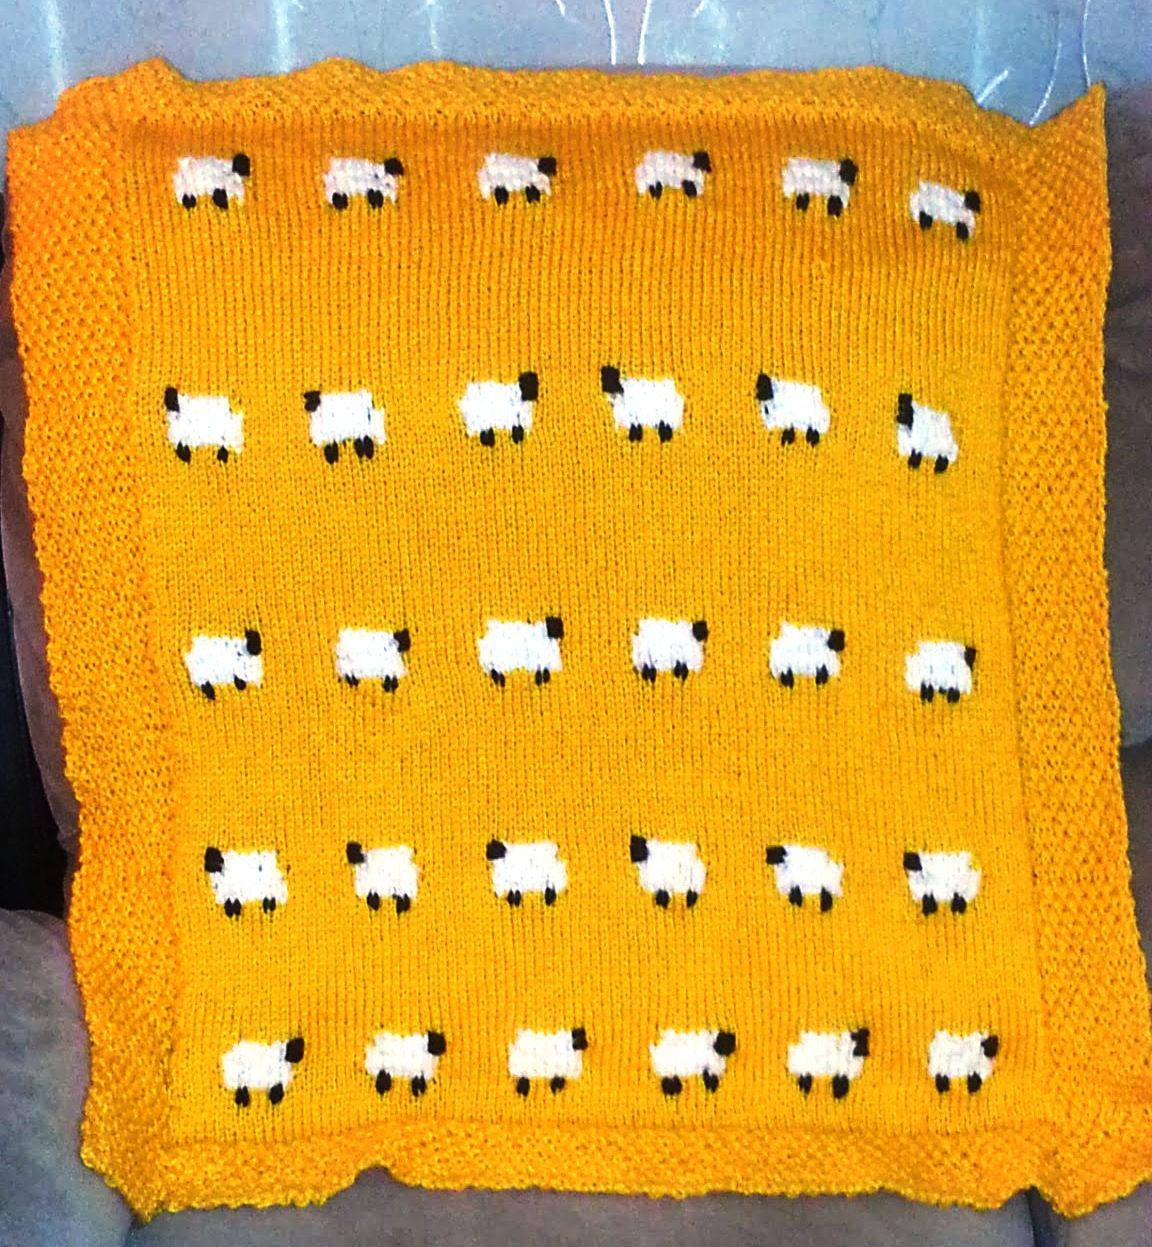 Knitting Pattern For Sheep Blanket : Knitted Baby Blanket Free Knitting Patterns Let S Knit ...